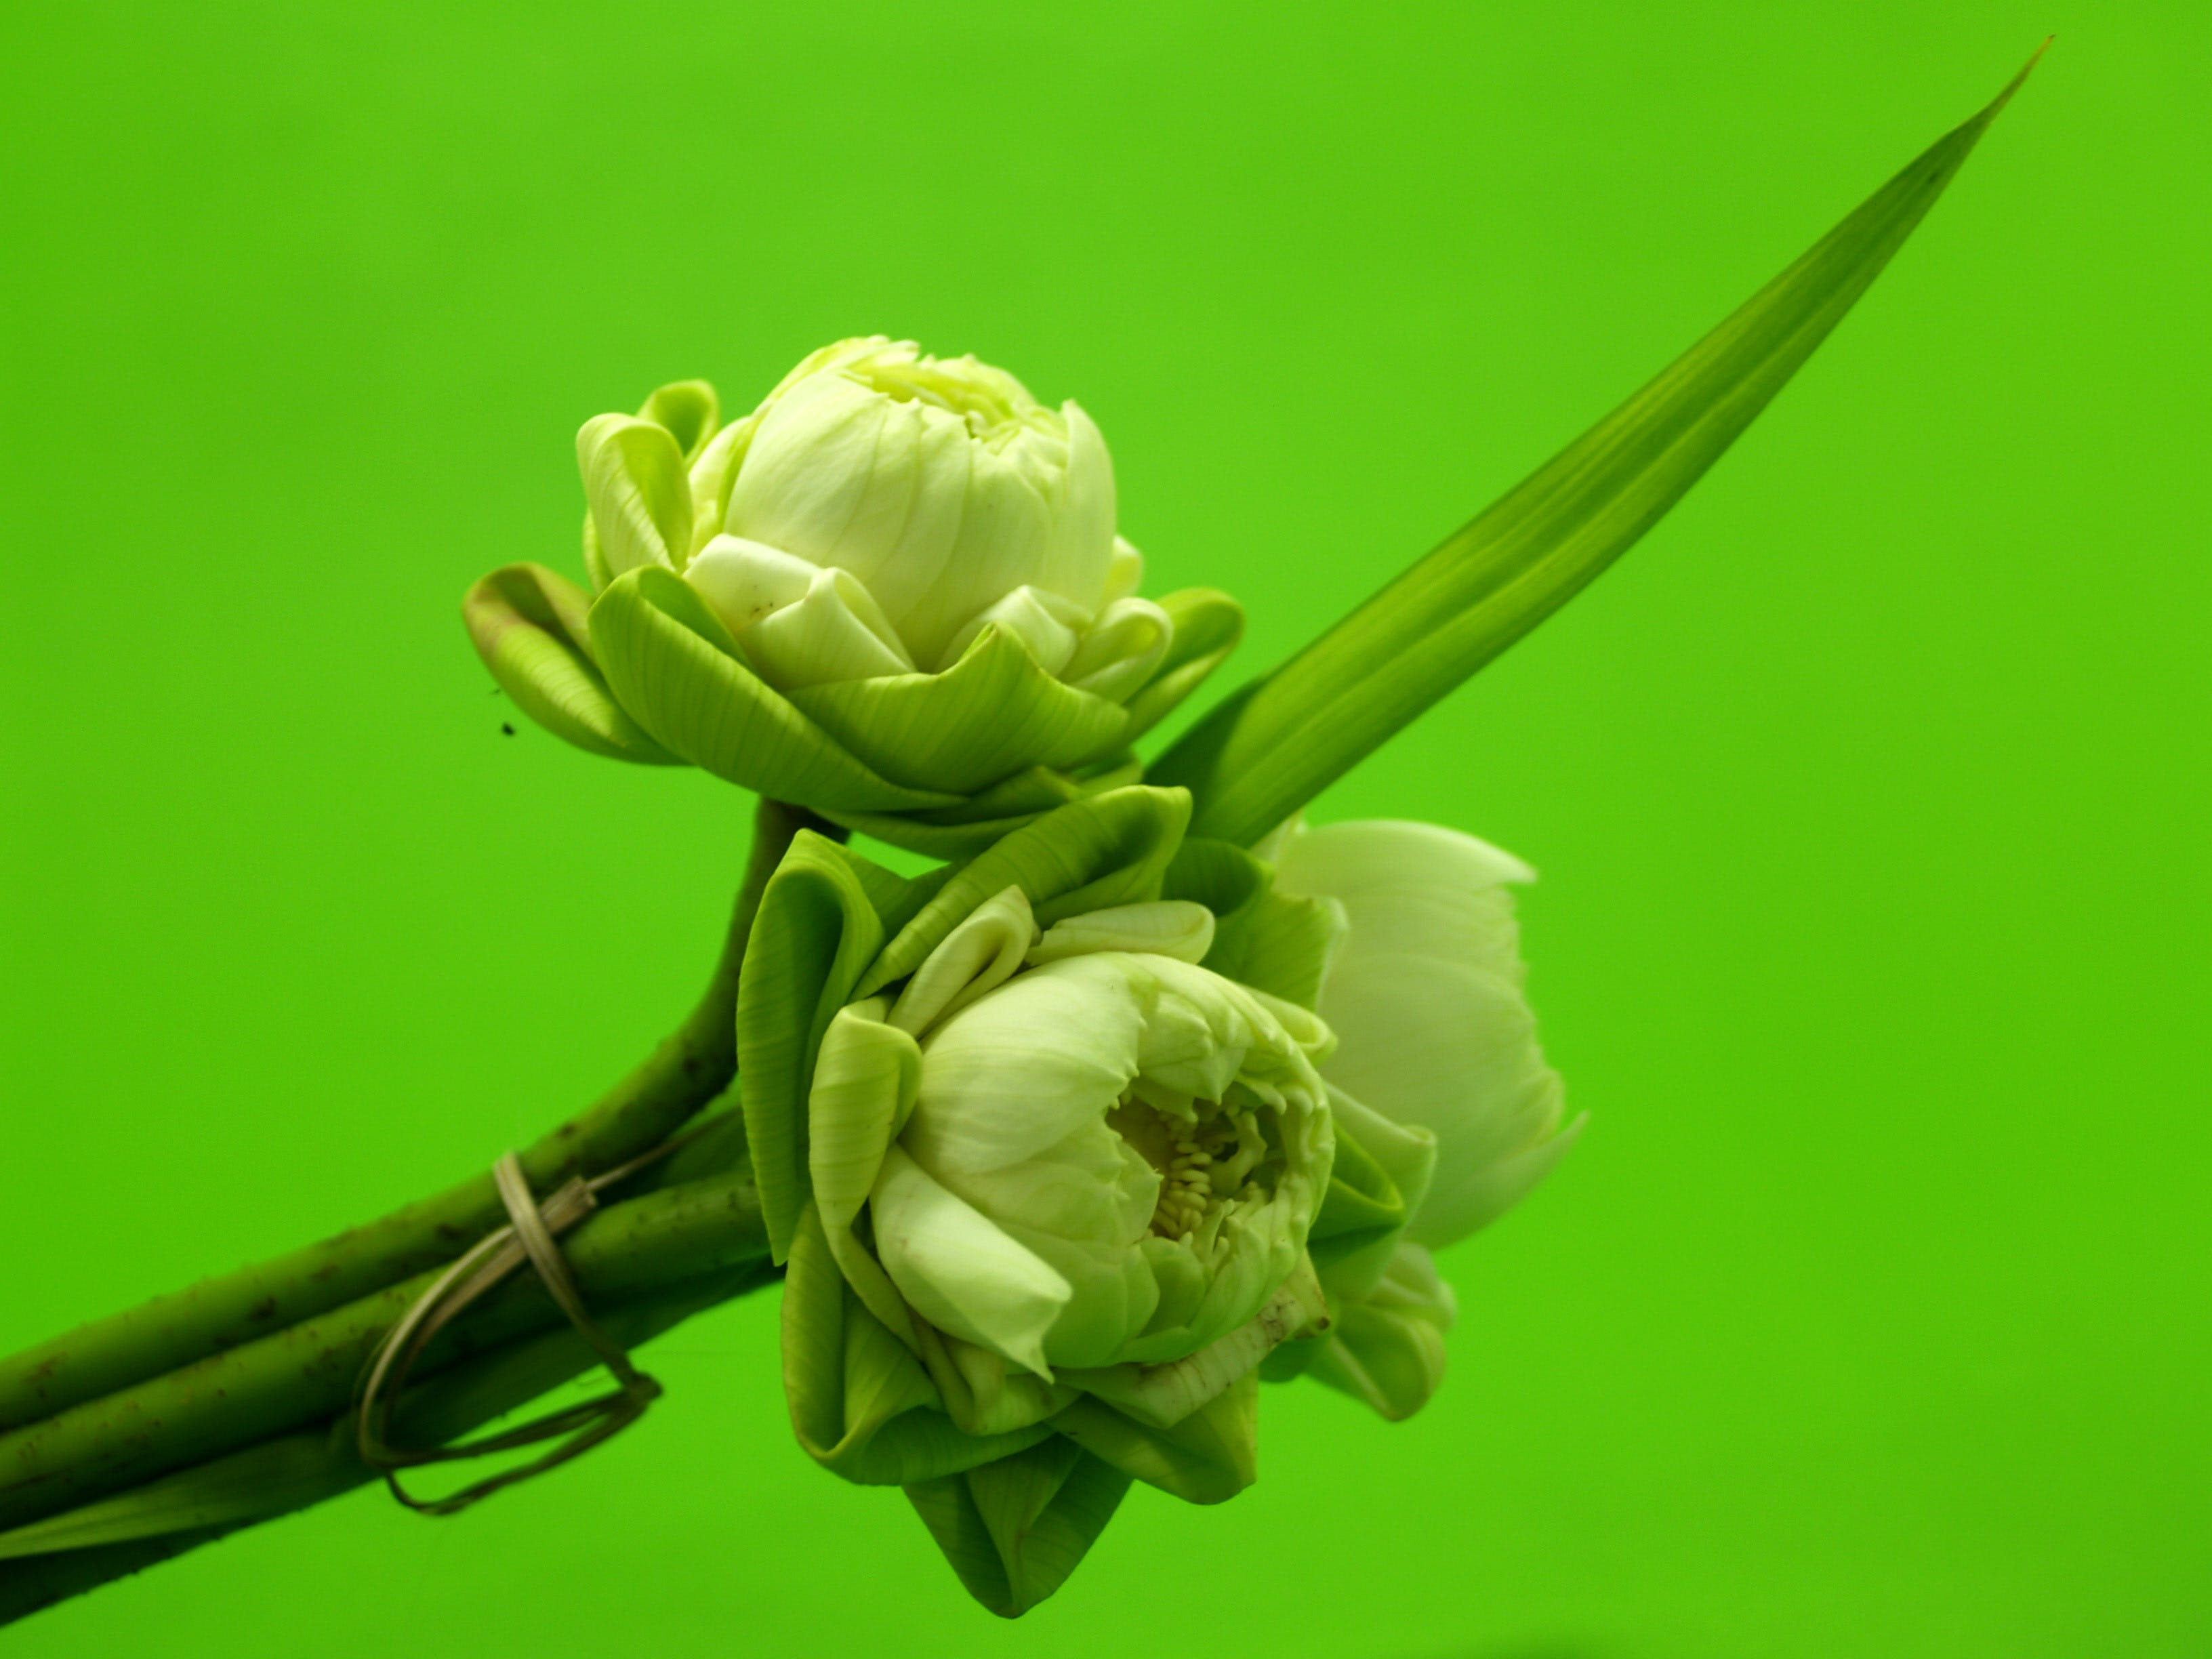 Close-up Photography of White Lotus Flower Buds